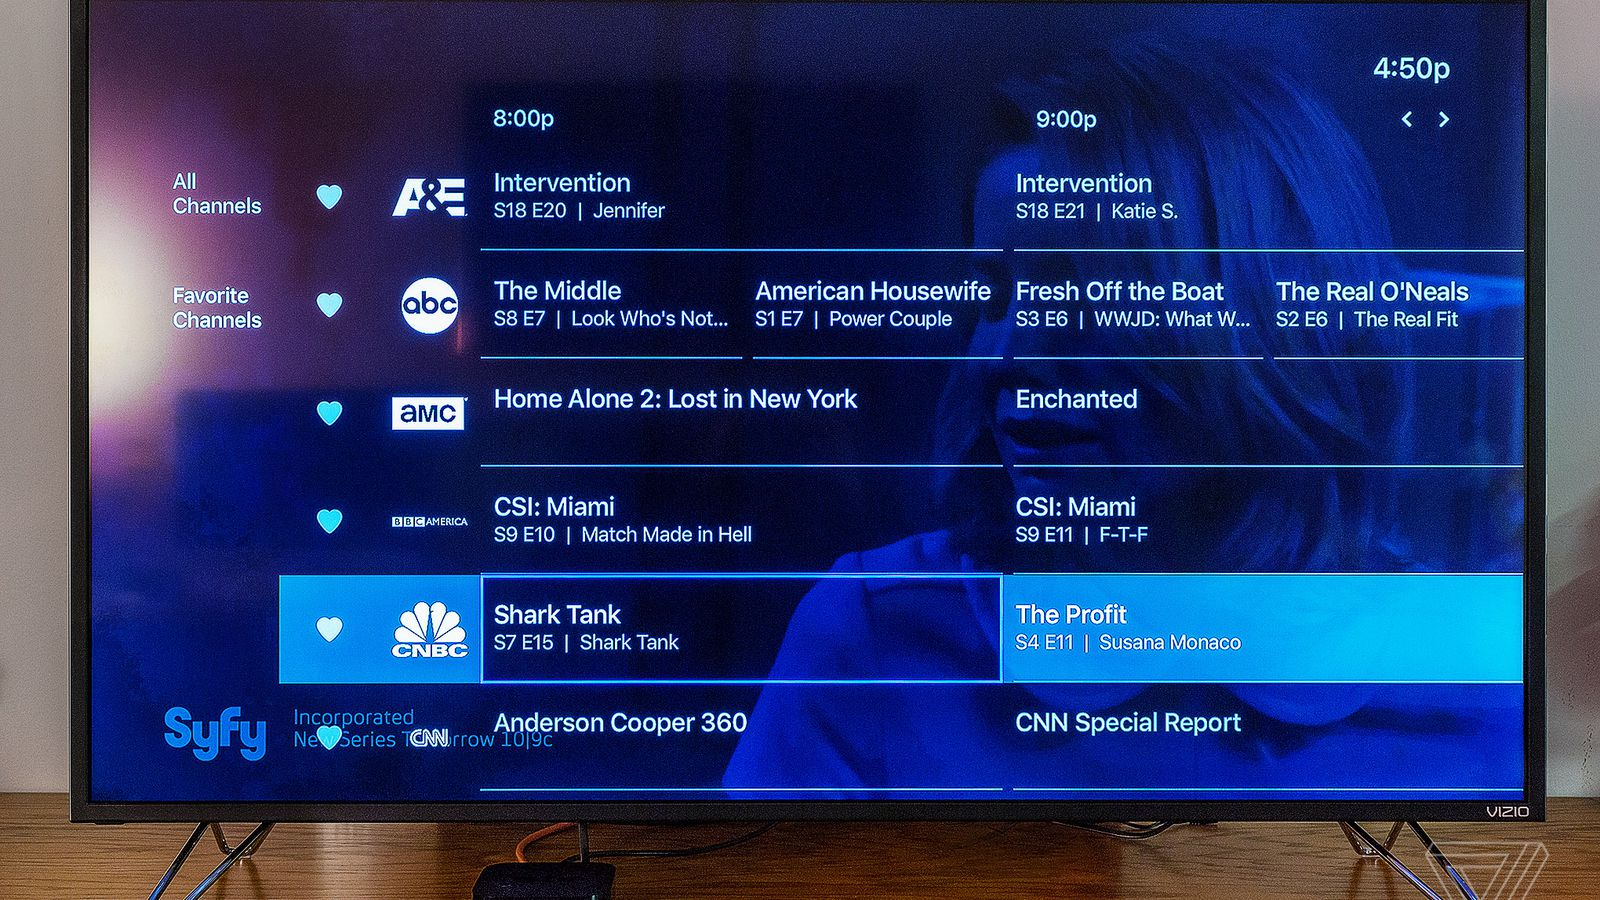 Direct Tv Internet Review >> DirecTV Now: everything you want to know - The Verge